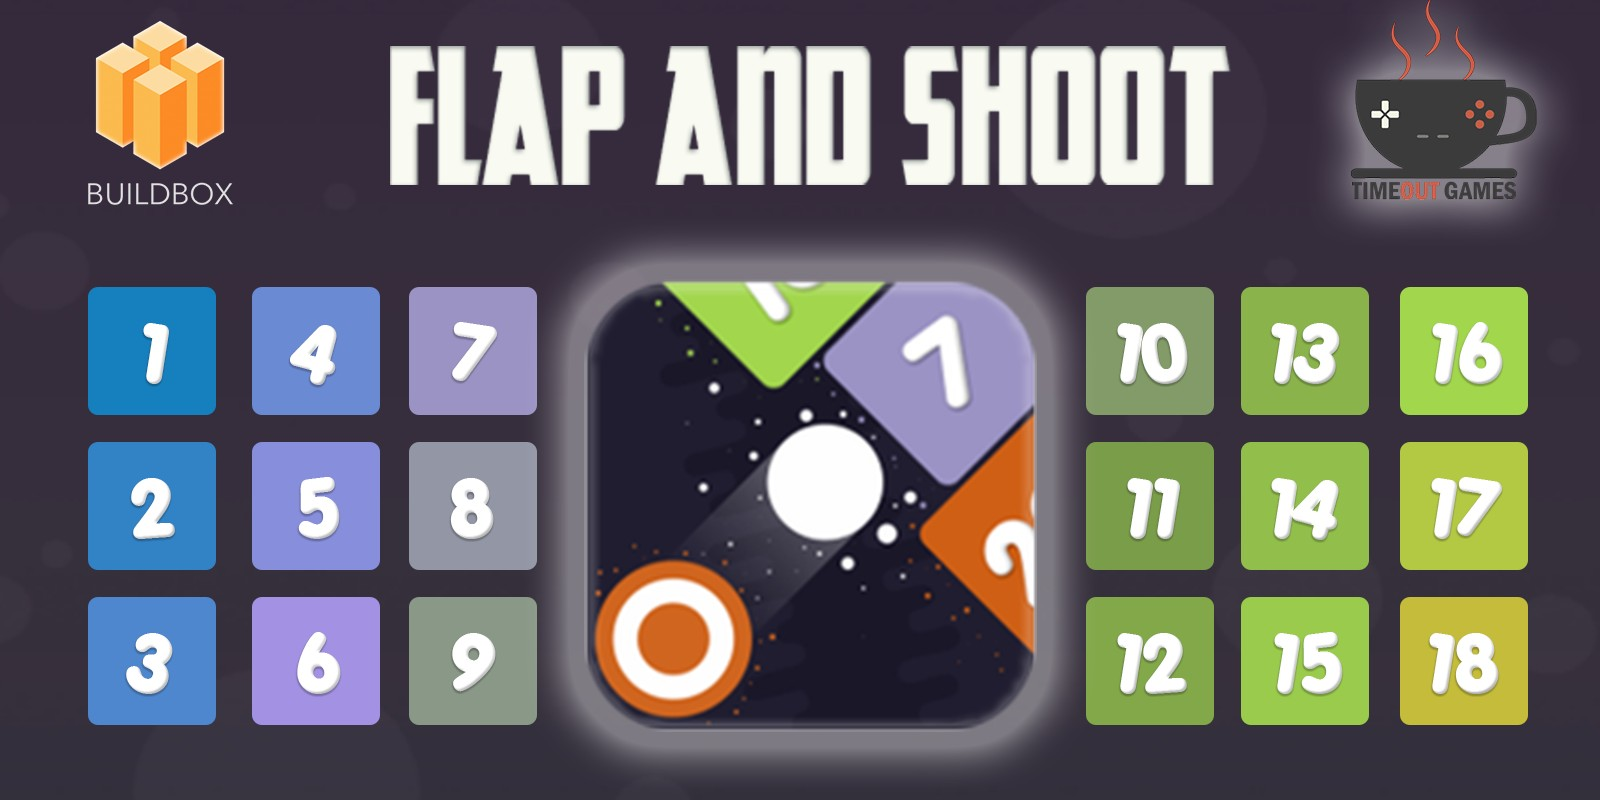 Flap and Shoot - Full Buildbox Game